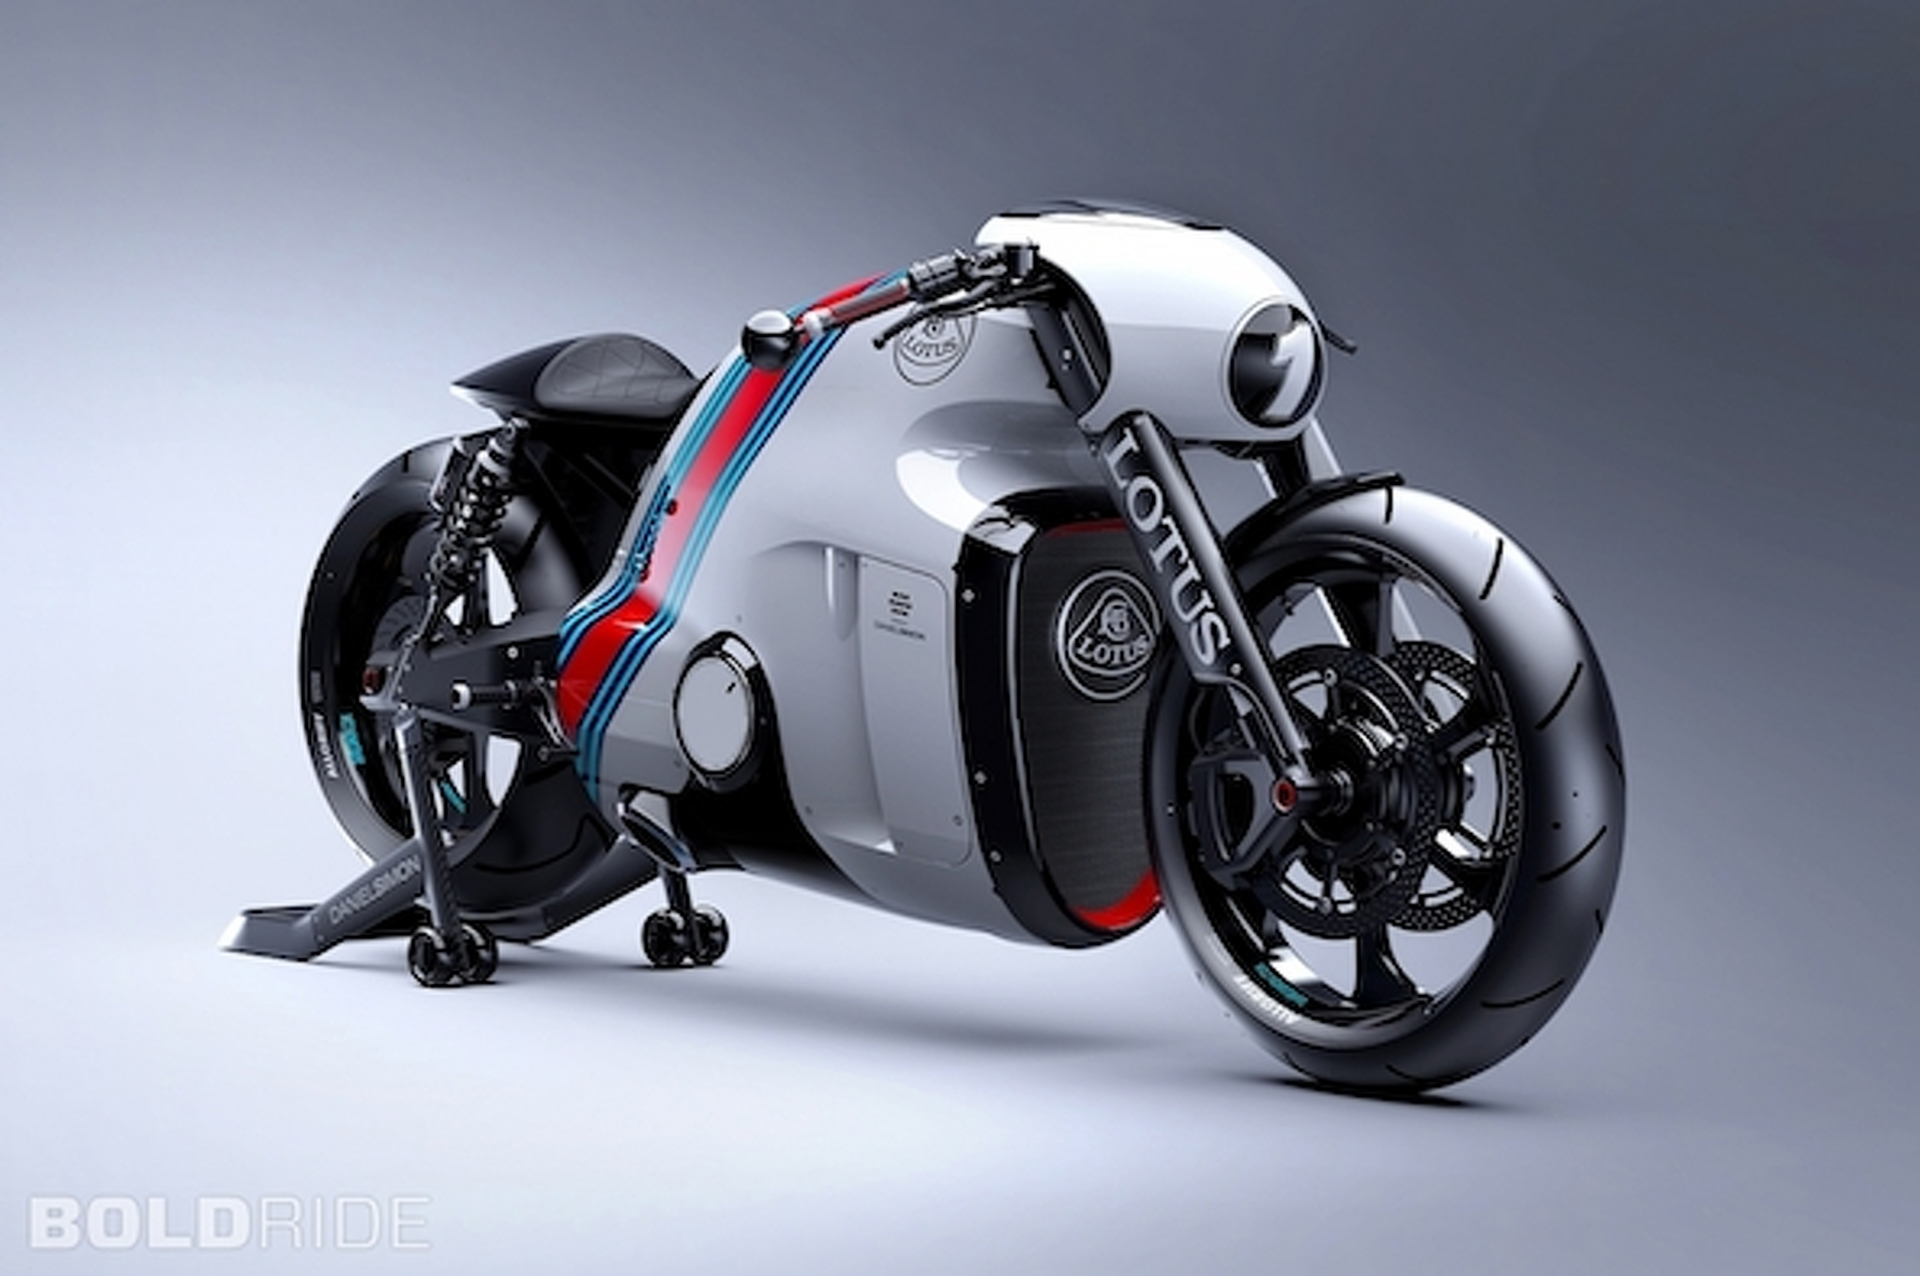 Lotus C-01 Superbike is a 200-HP, Carbon Fiber British Beast